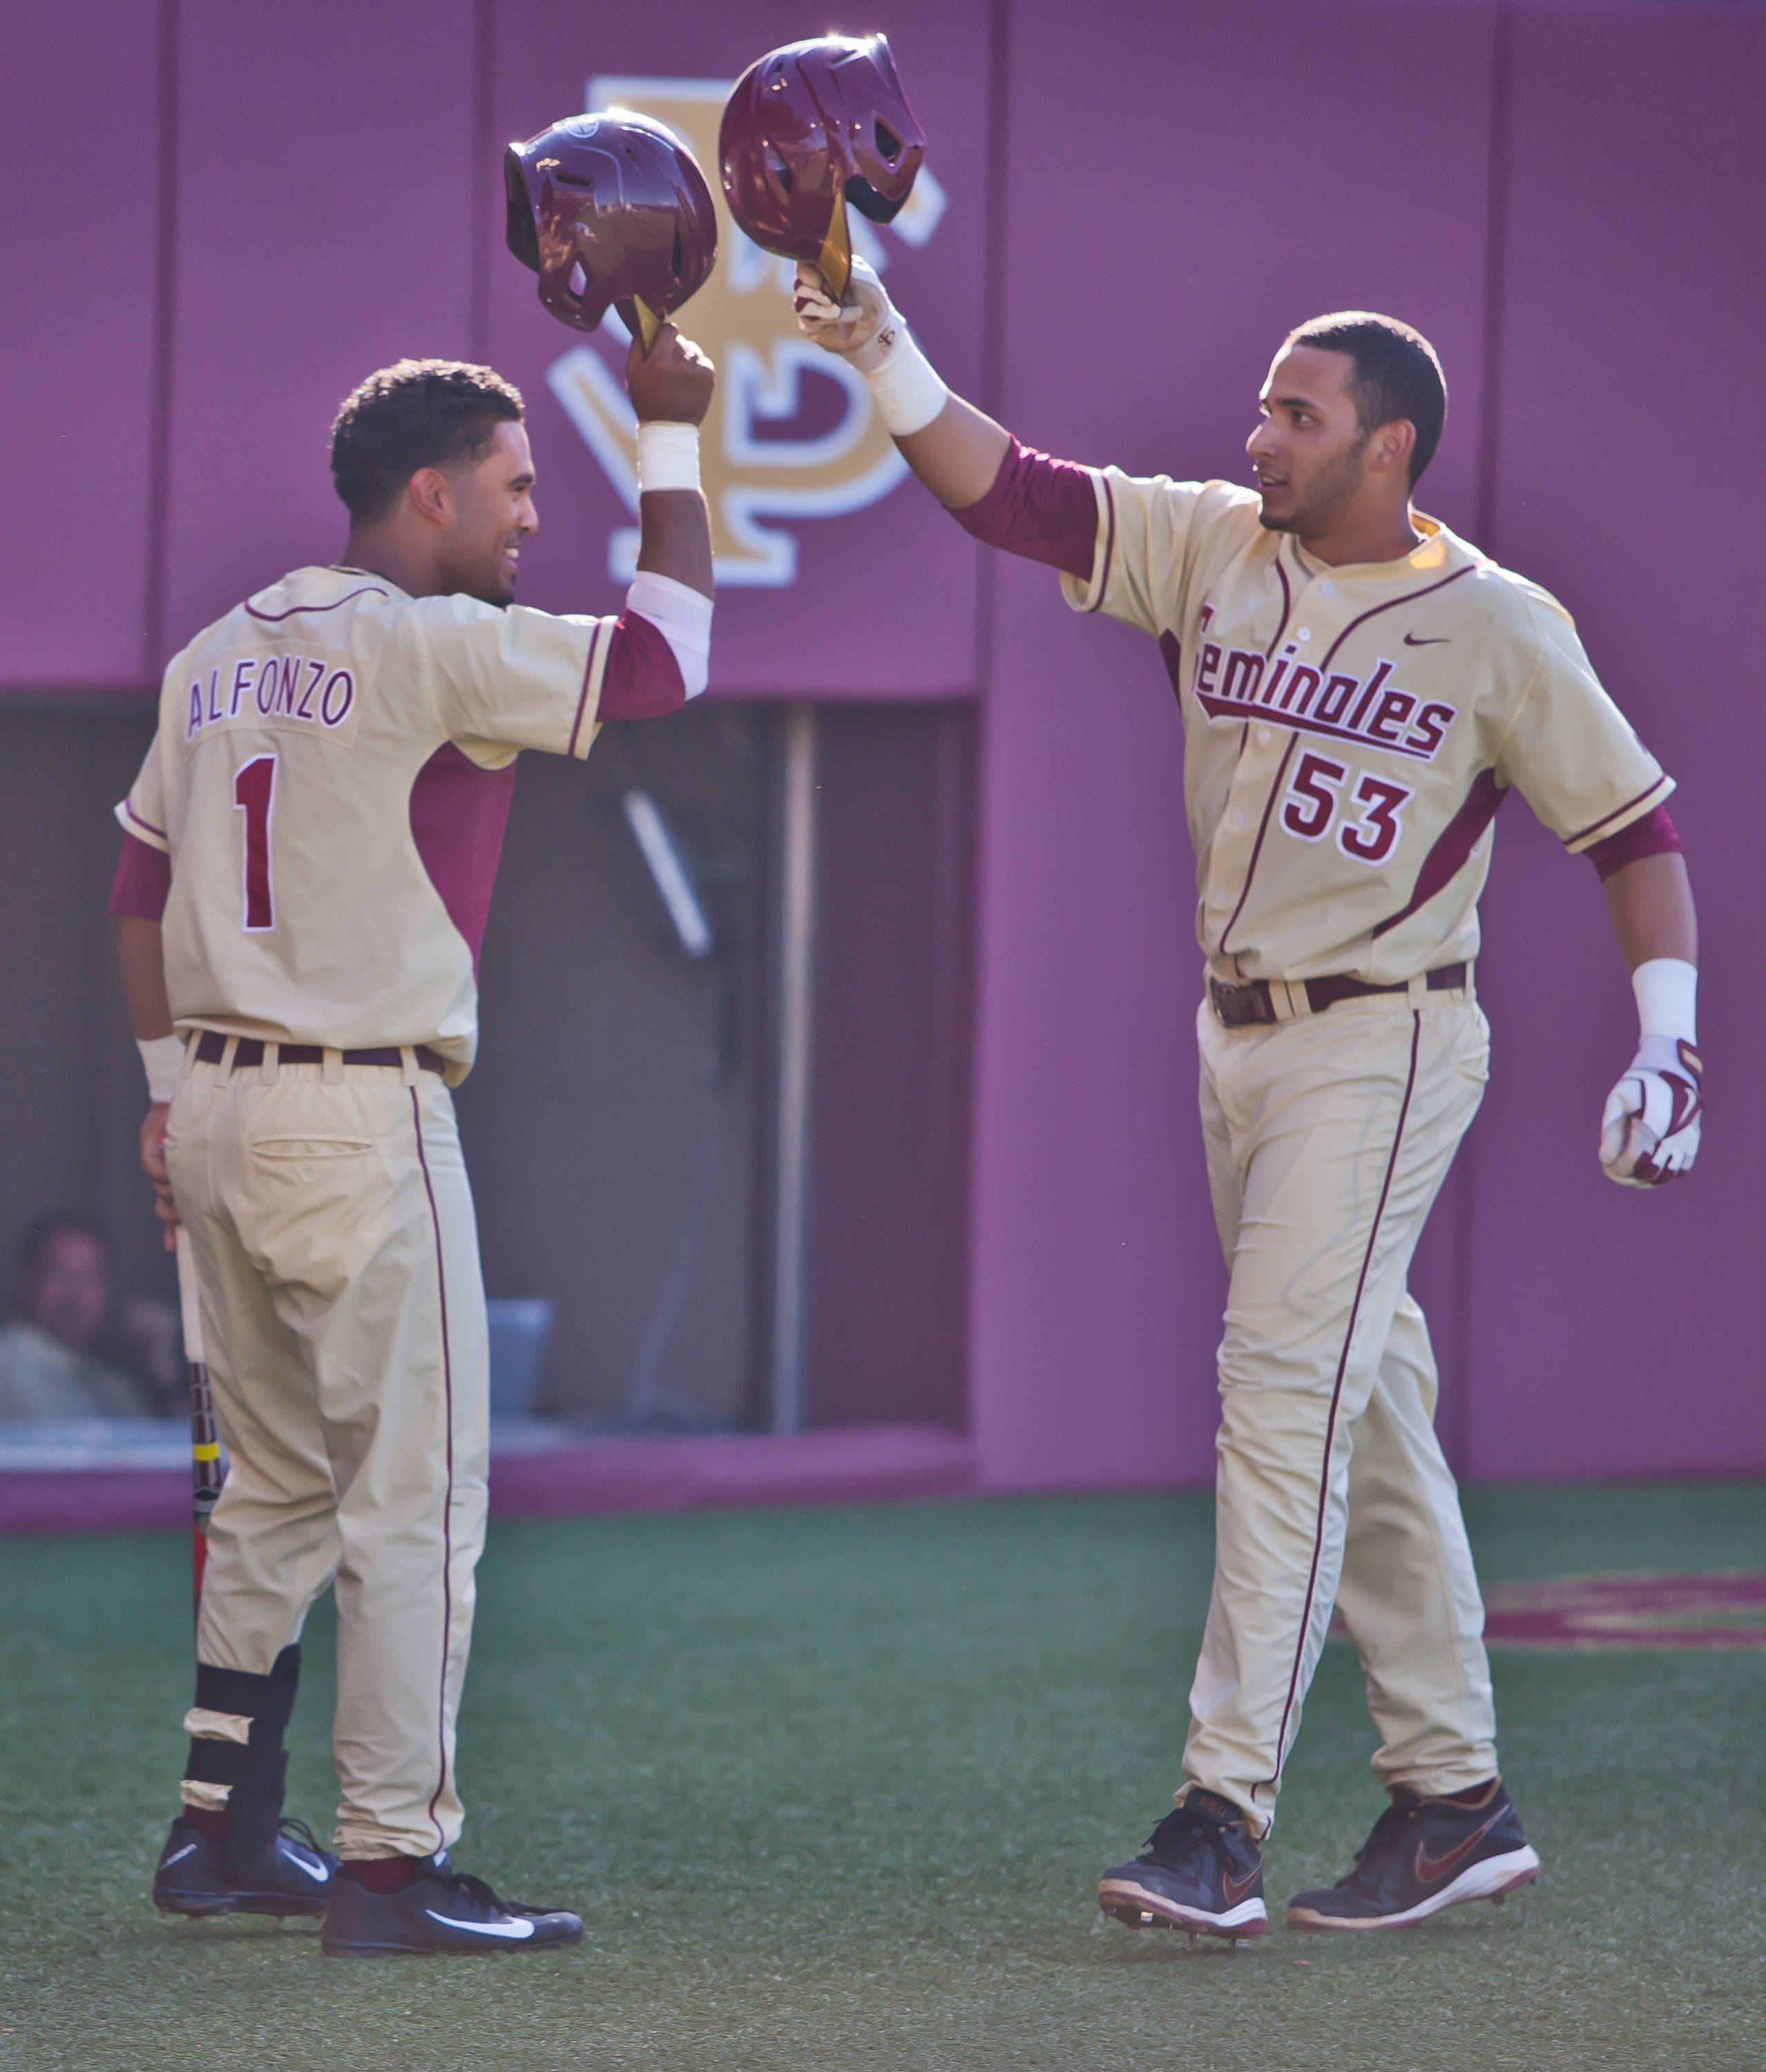 Giovanny Alfonzo greets Jose Brizuela after his third inning home run.